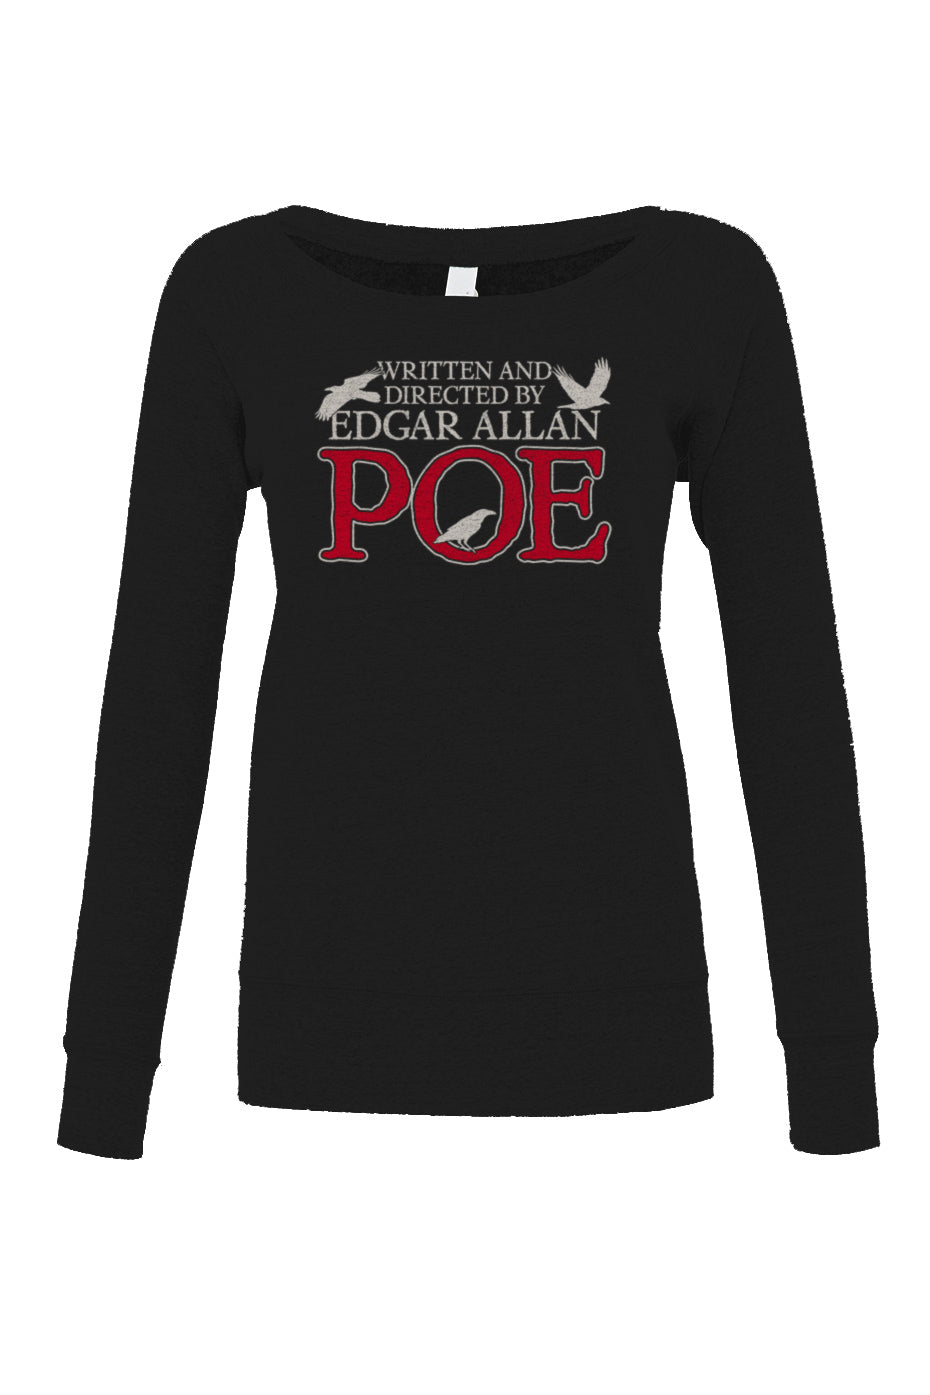 Women's Written and Directed by Edgar Allan Poe Scoop Neck Fleece